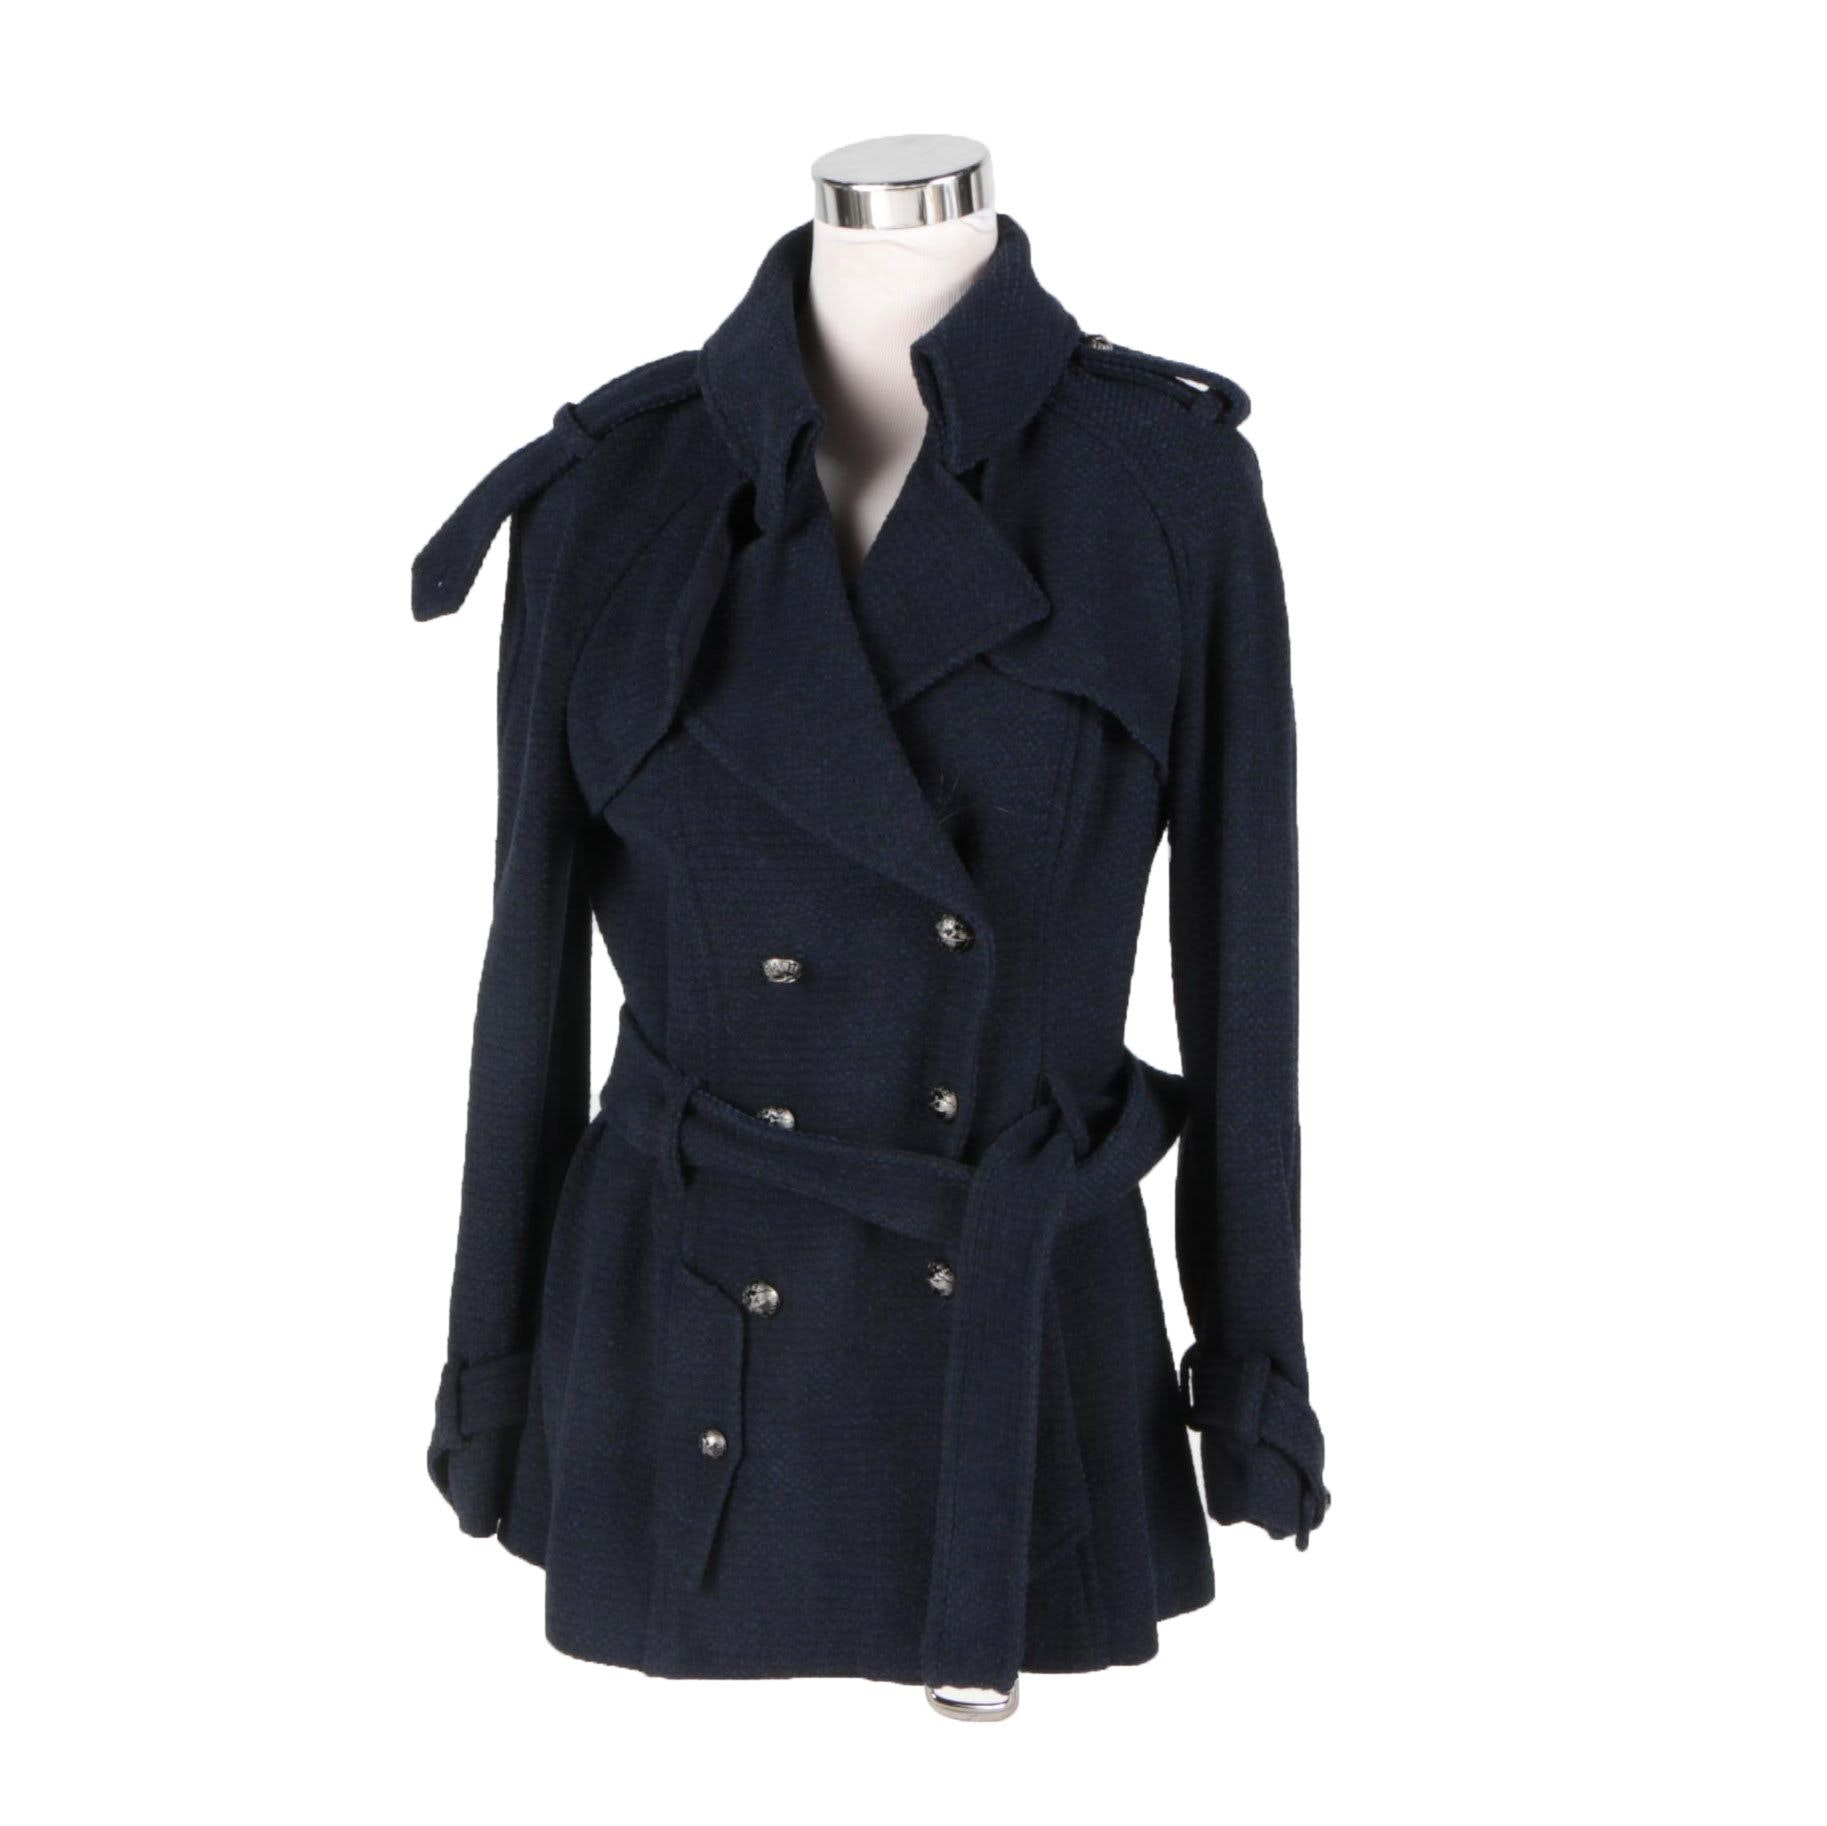 Chanel Navy Blue Wool Blended Women's Jacket